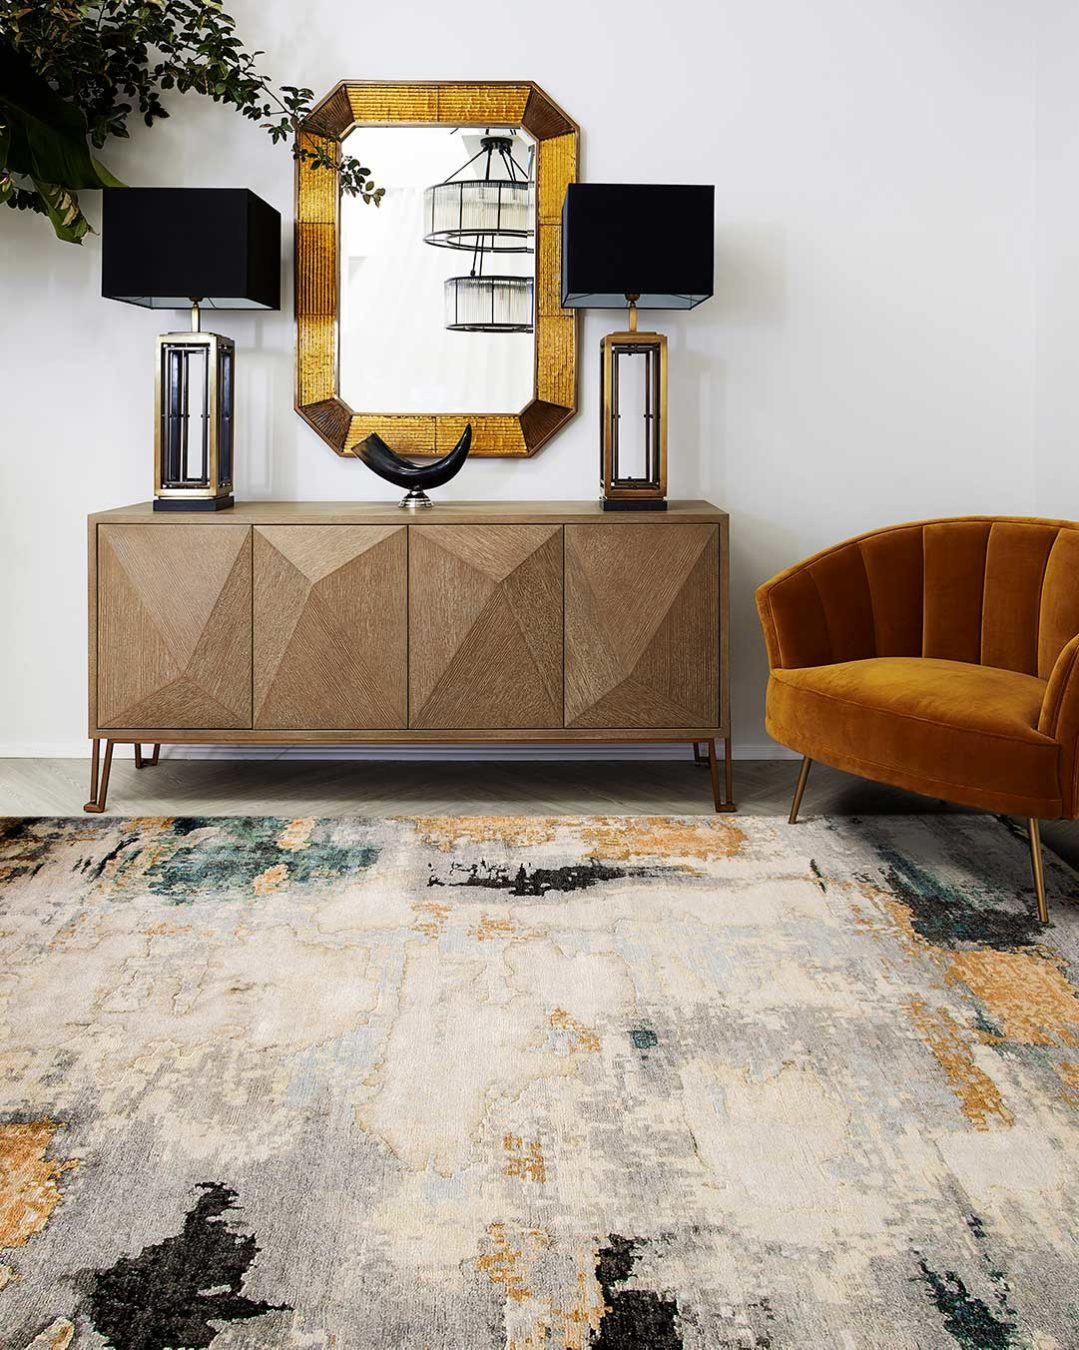 Living room image of distressed Glory Days handknot rug in gold and green